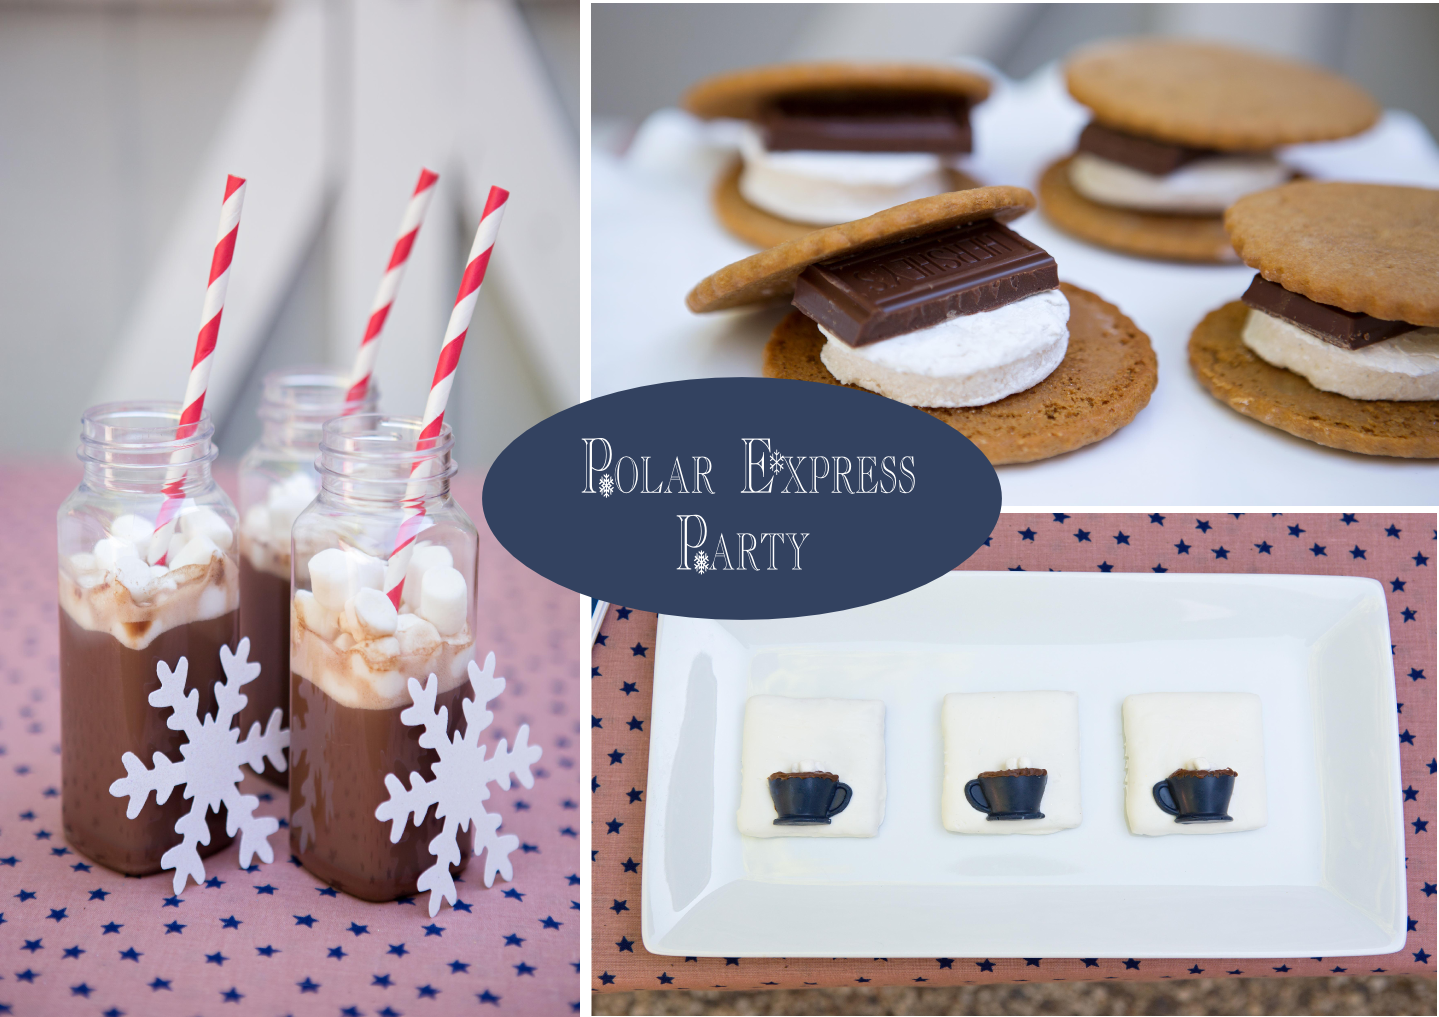 Ordinary Polar Express Party Ideas For Christmas Part - 7: Polar Express Party